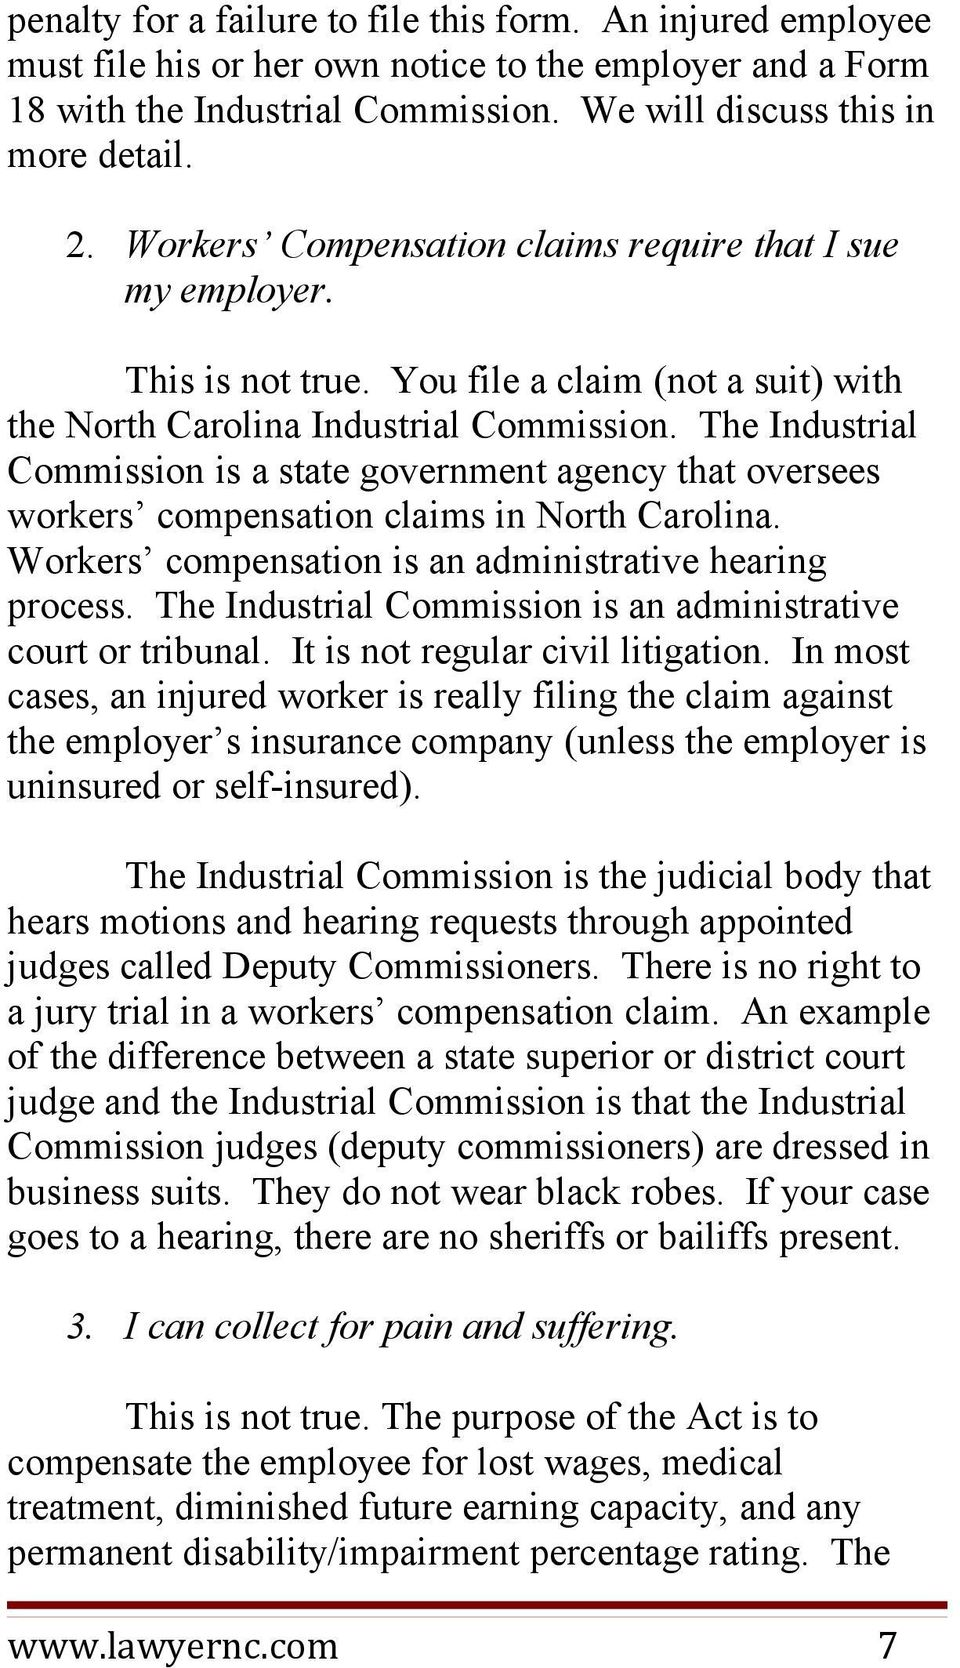 The Industrial Commission is a state government agency that oversees workers compensation claims in North Carolina. Workers compensation is an administrative hearing process.